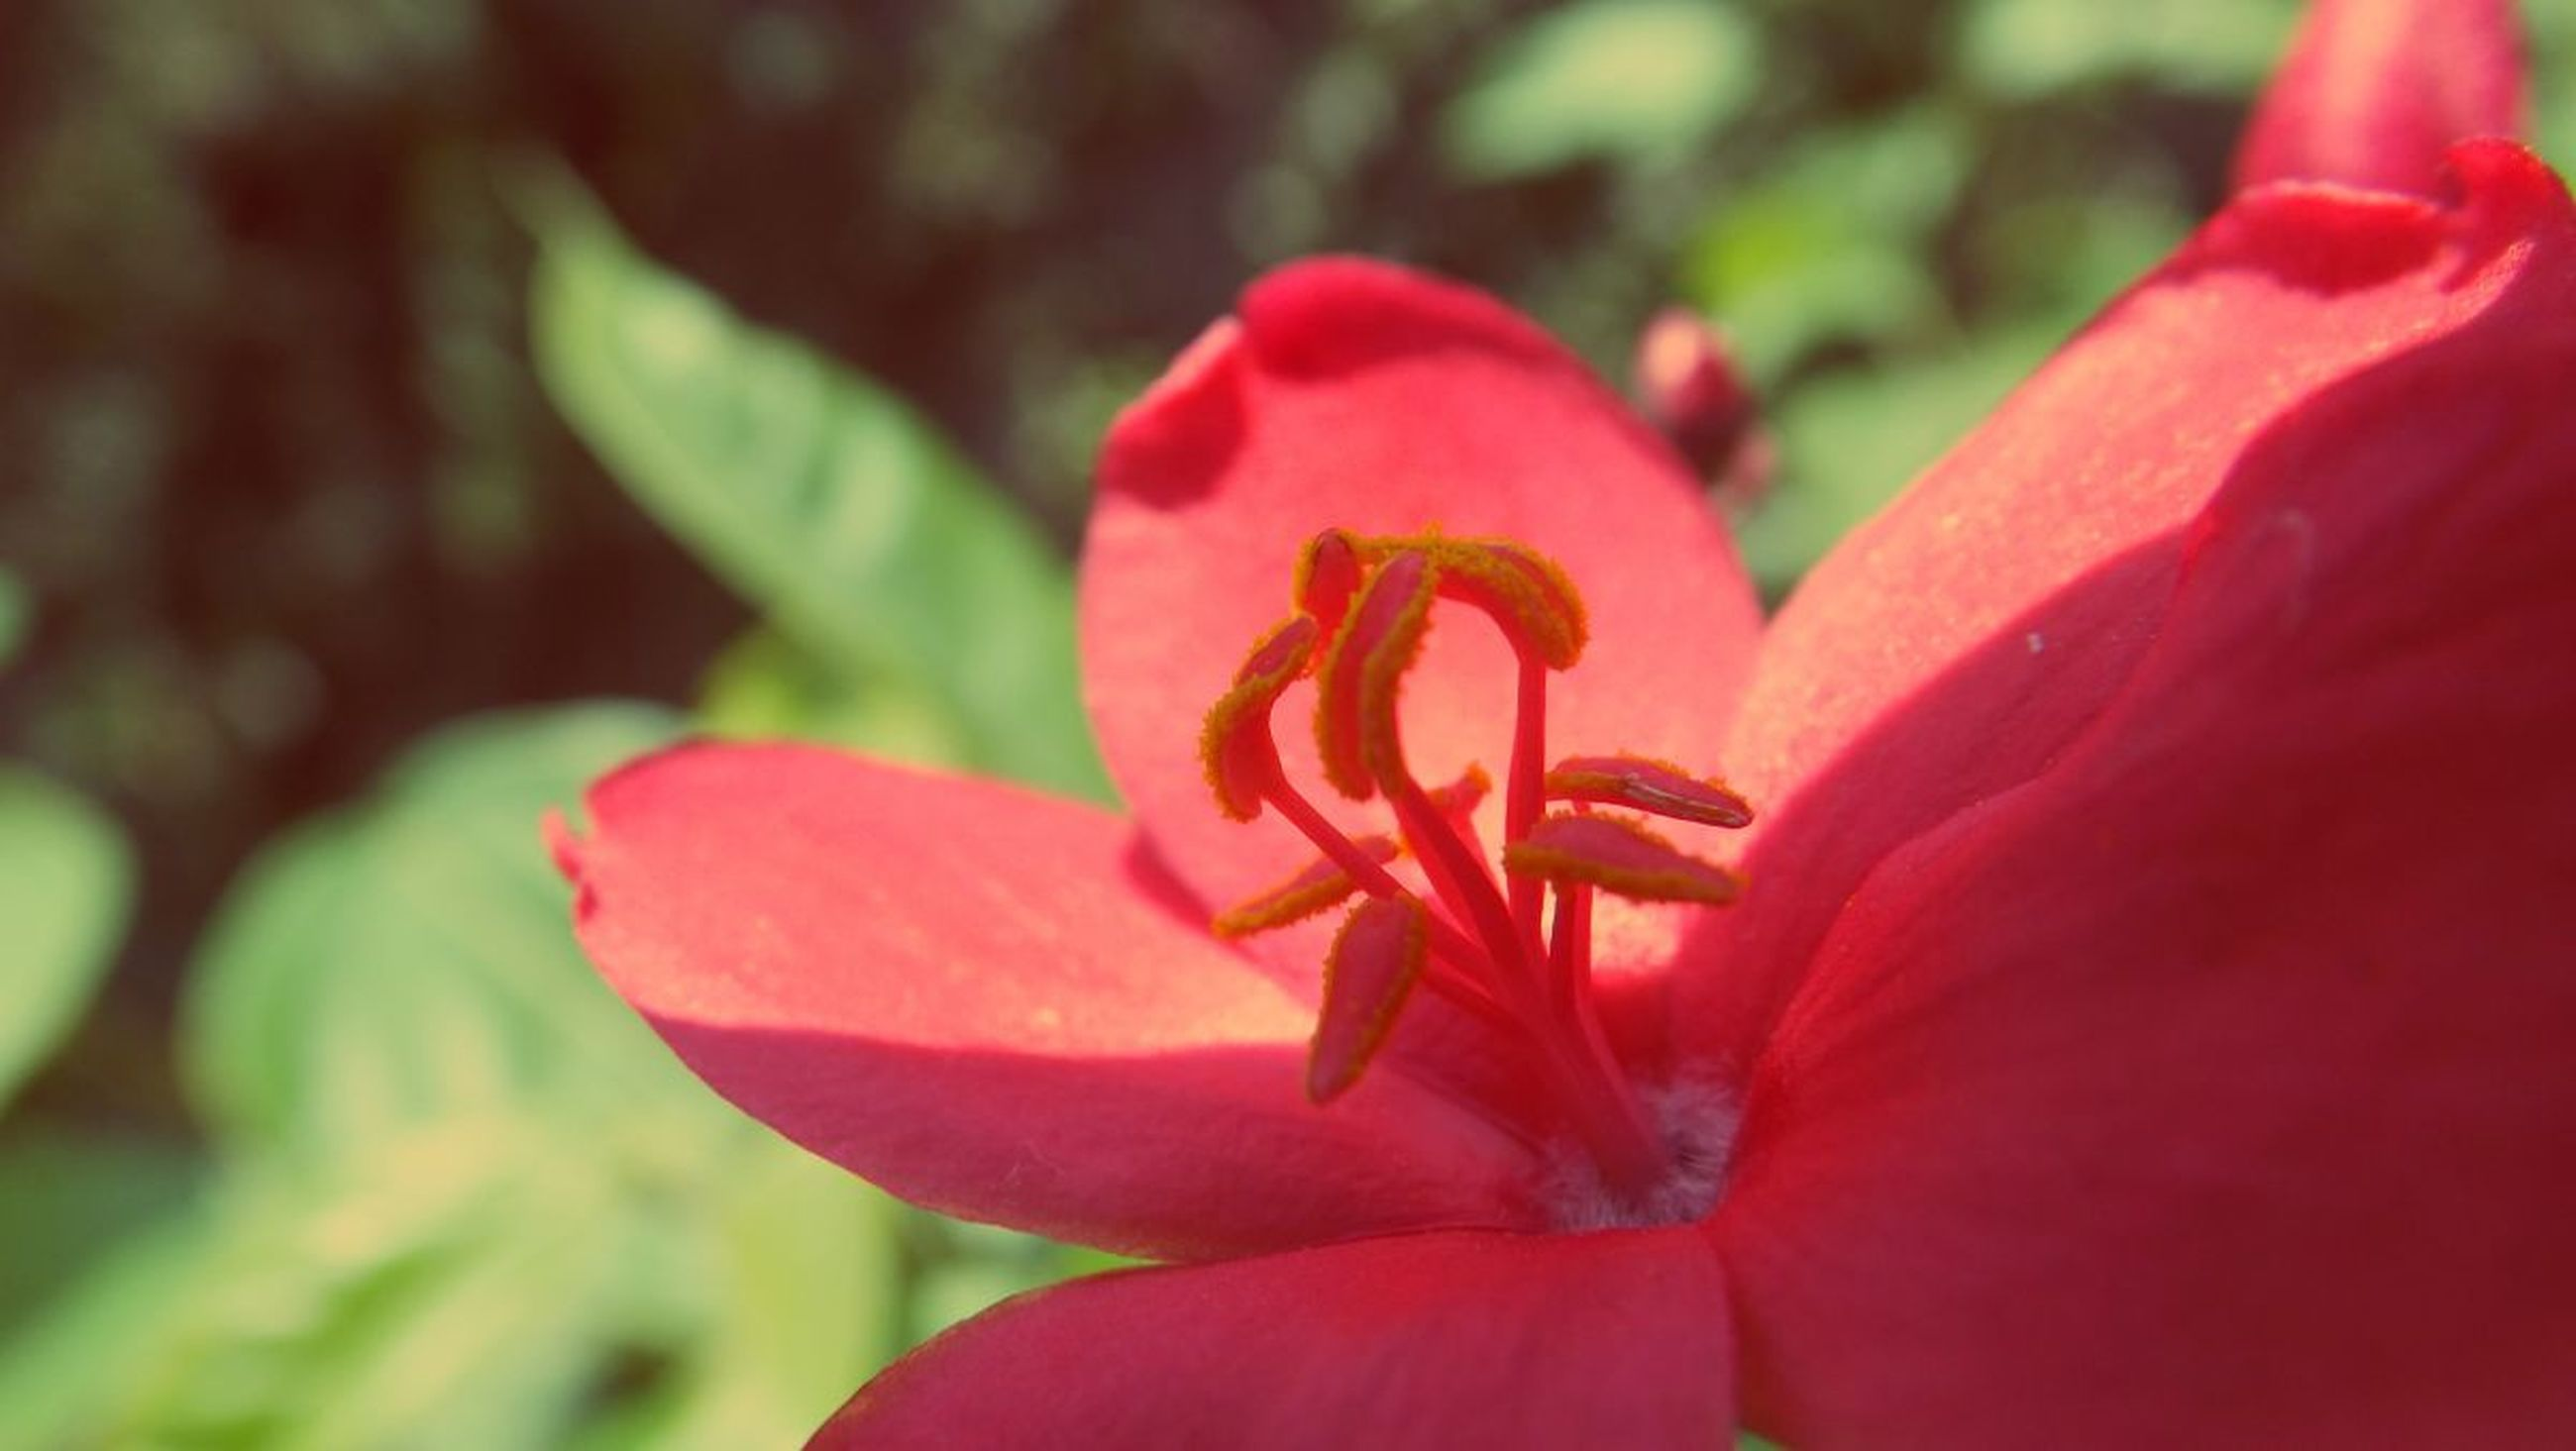 flower, petal, flower head, freshness, fragility, red, growth, beauty in nature, close-up, blooming, nature, focus on foreground, plant, stamen, single flower, pollen, in bloom, pink color, day, park - man made space